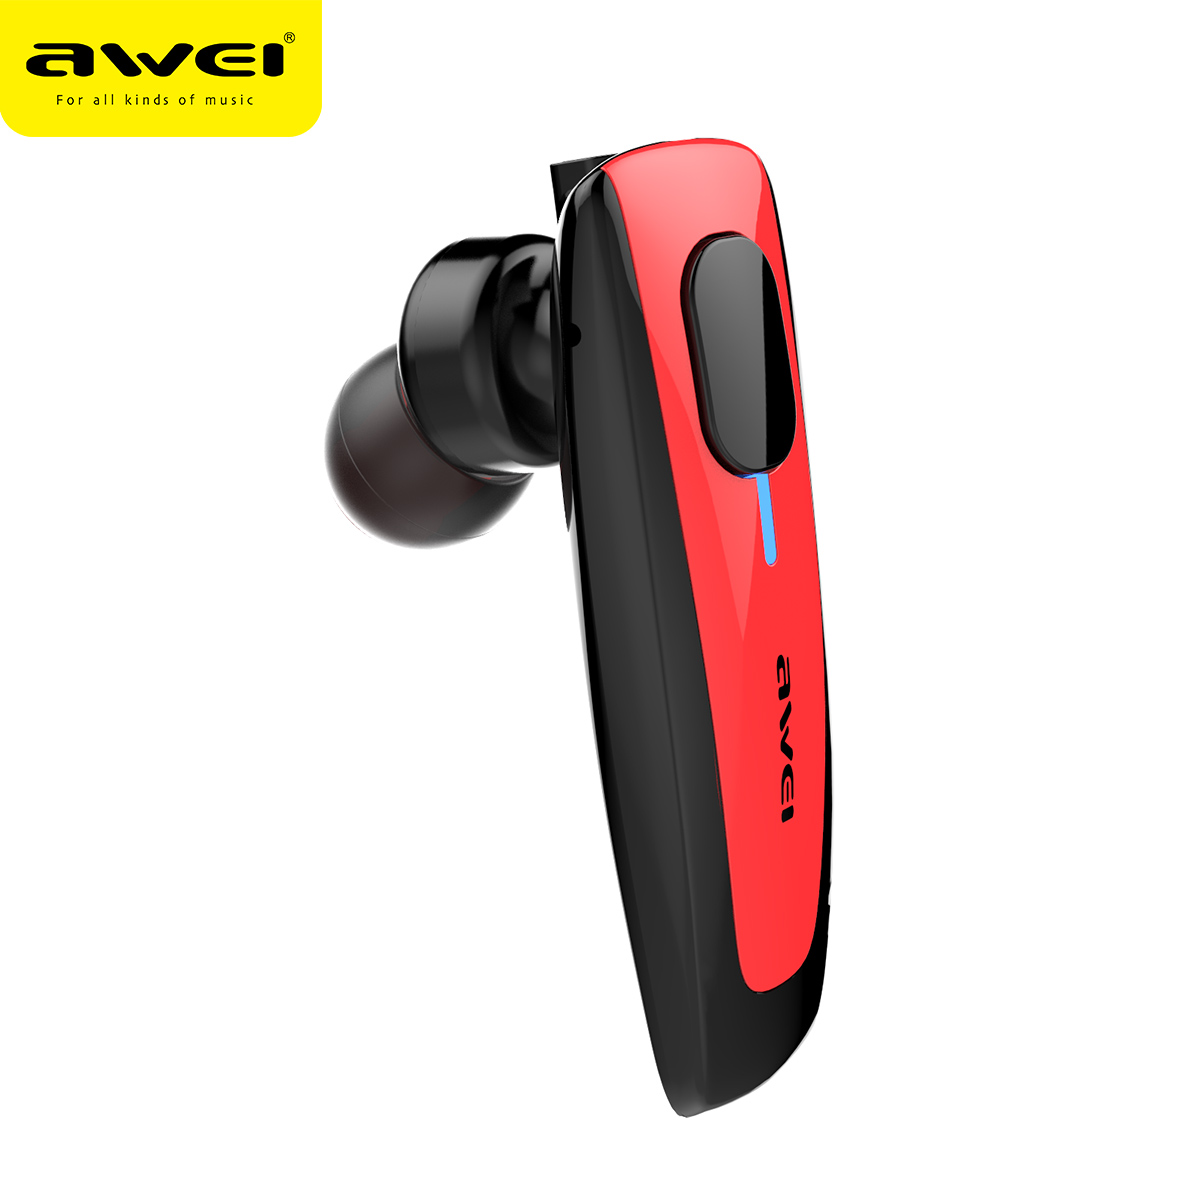 AWEI N3 Bluetooth Headphones Wireless Earphone Cordless Headset for phone Hands Free Auriculares Kulakl k Fone de ouvido awei a920bls bluetooth headphone fone de ouvido wireless earphone sports headset hands free casque with mic audifonos cordless